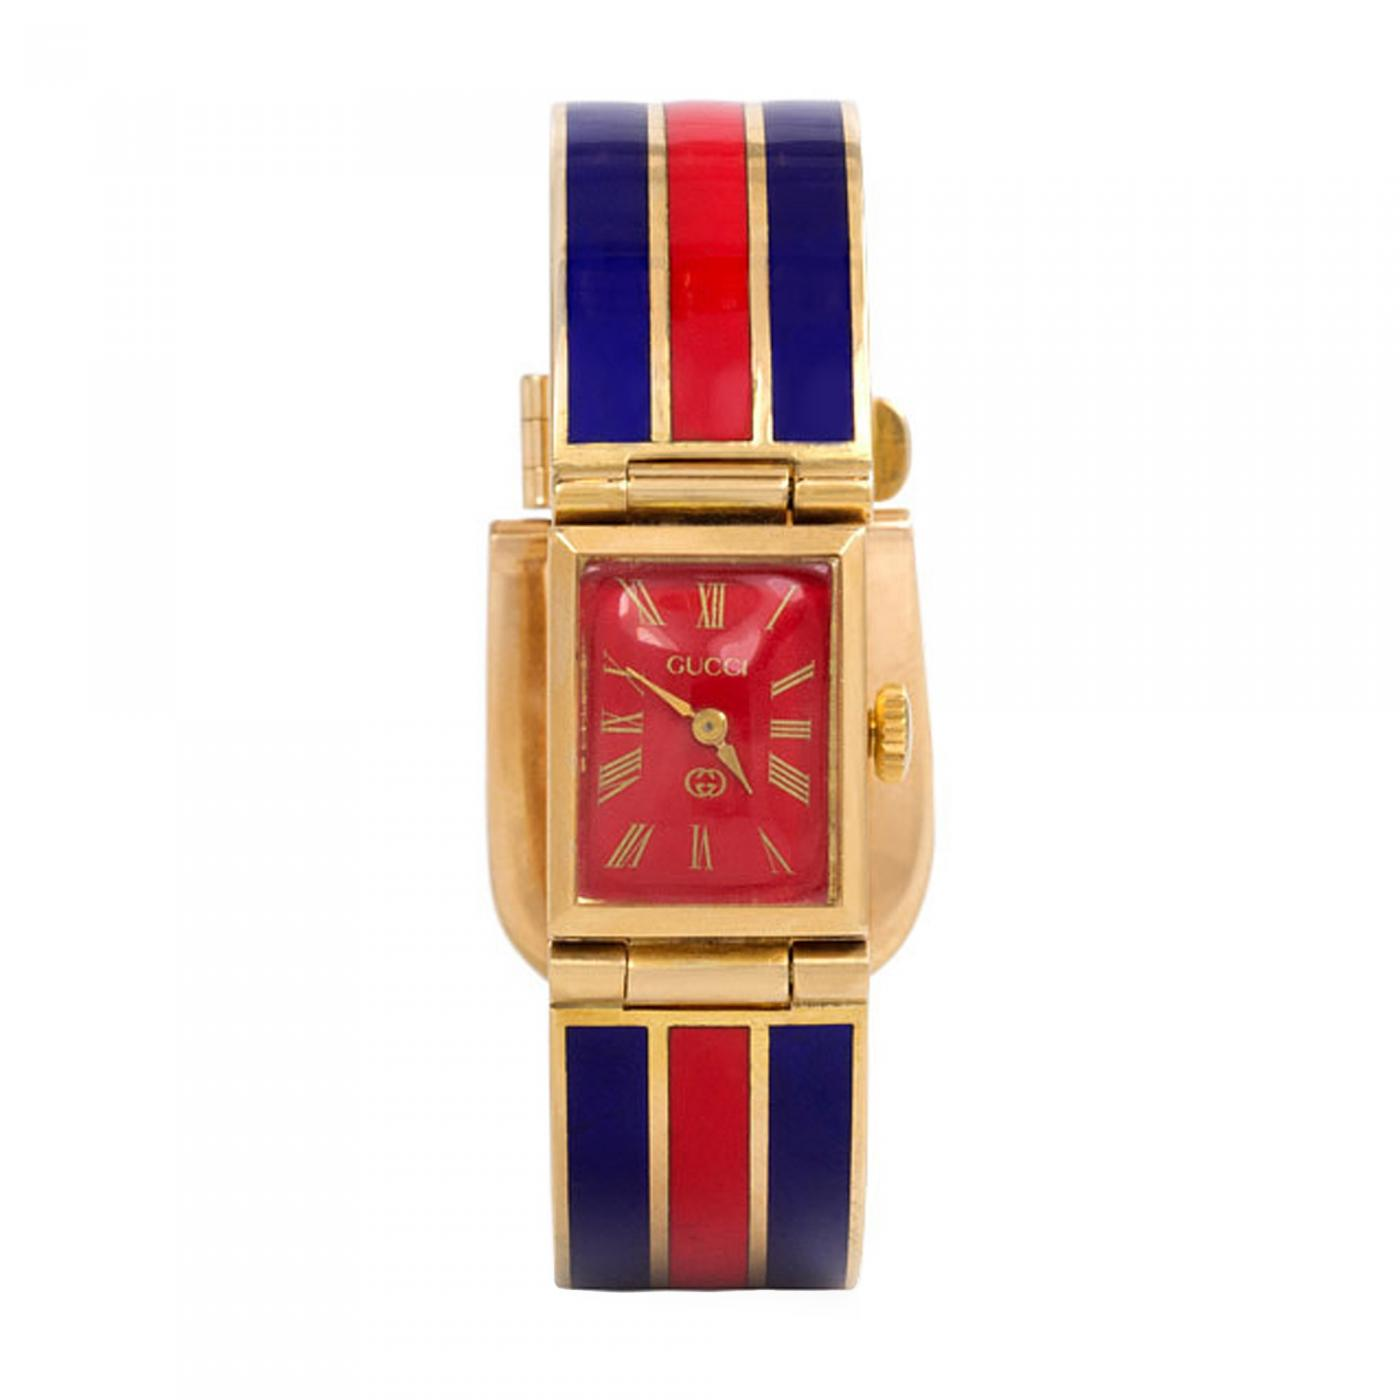 486e2967173 Gucci - 1960 s Gucci Gold and Enamel Bracelet Watch